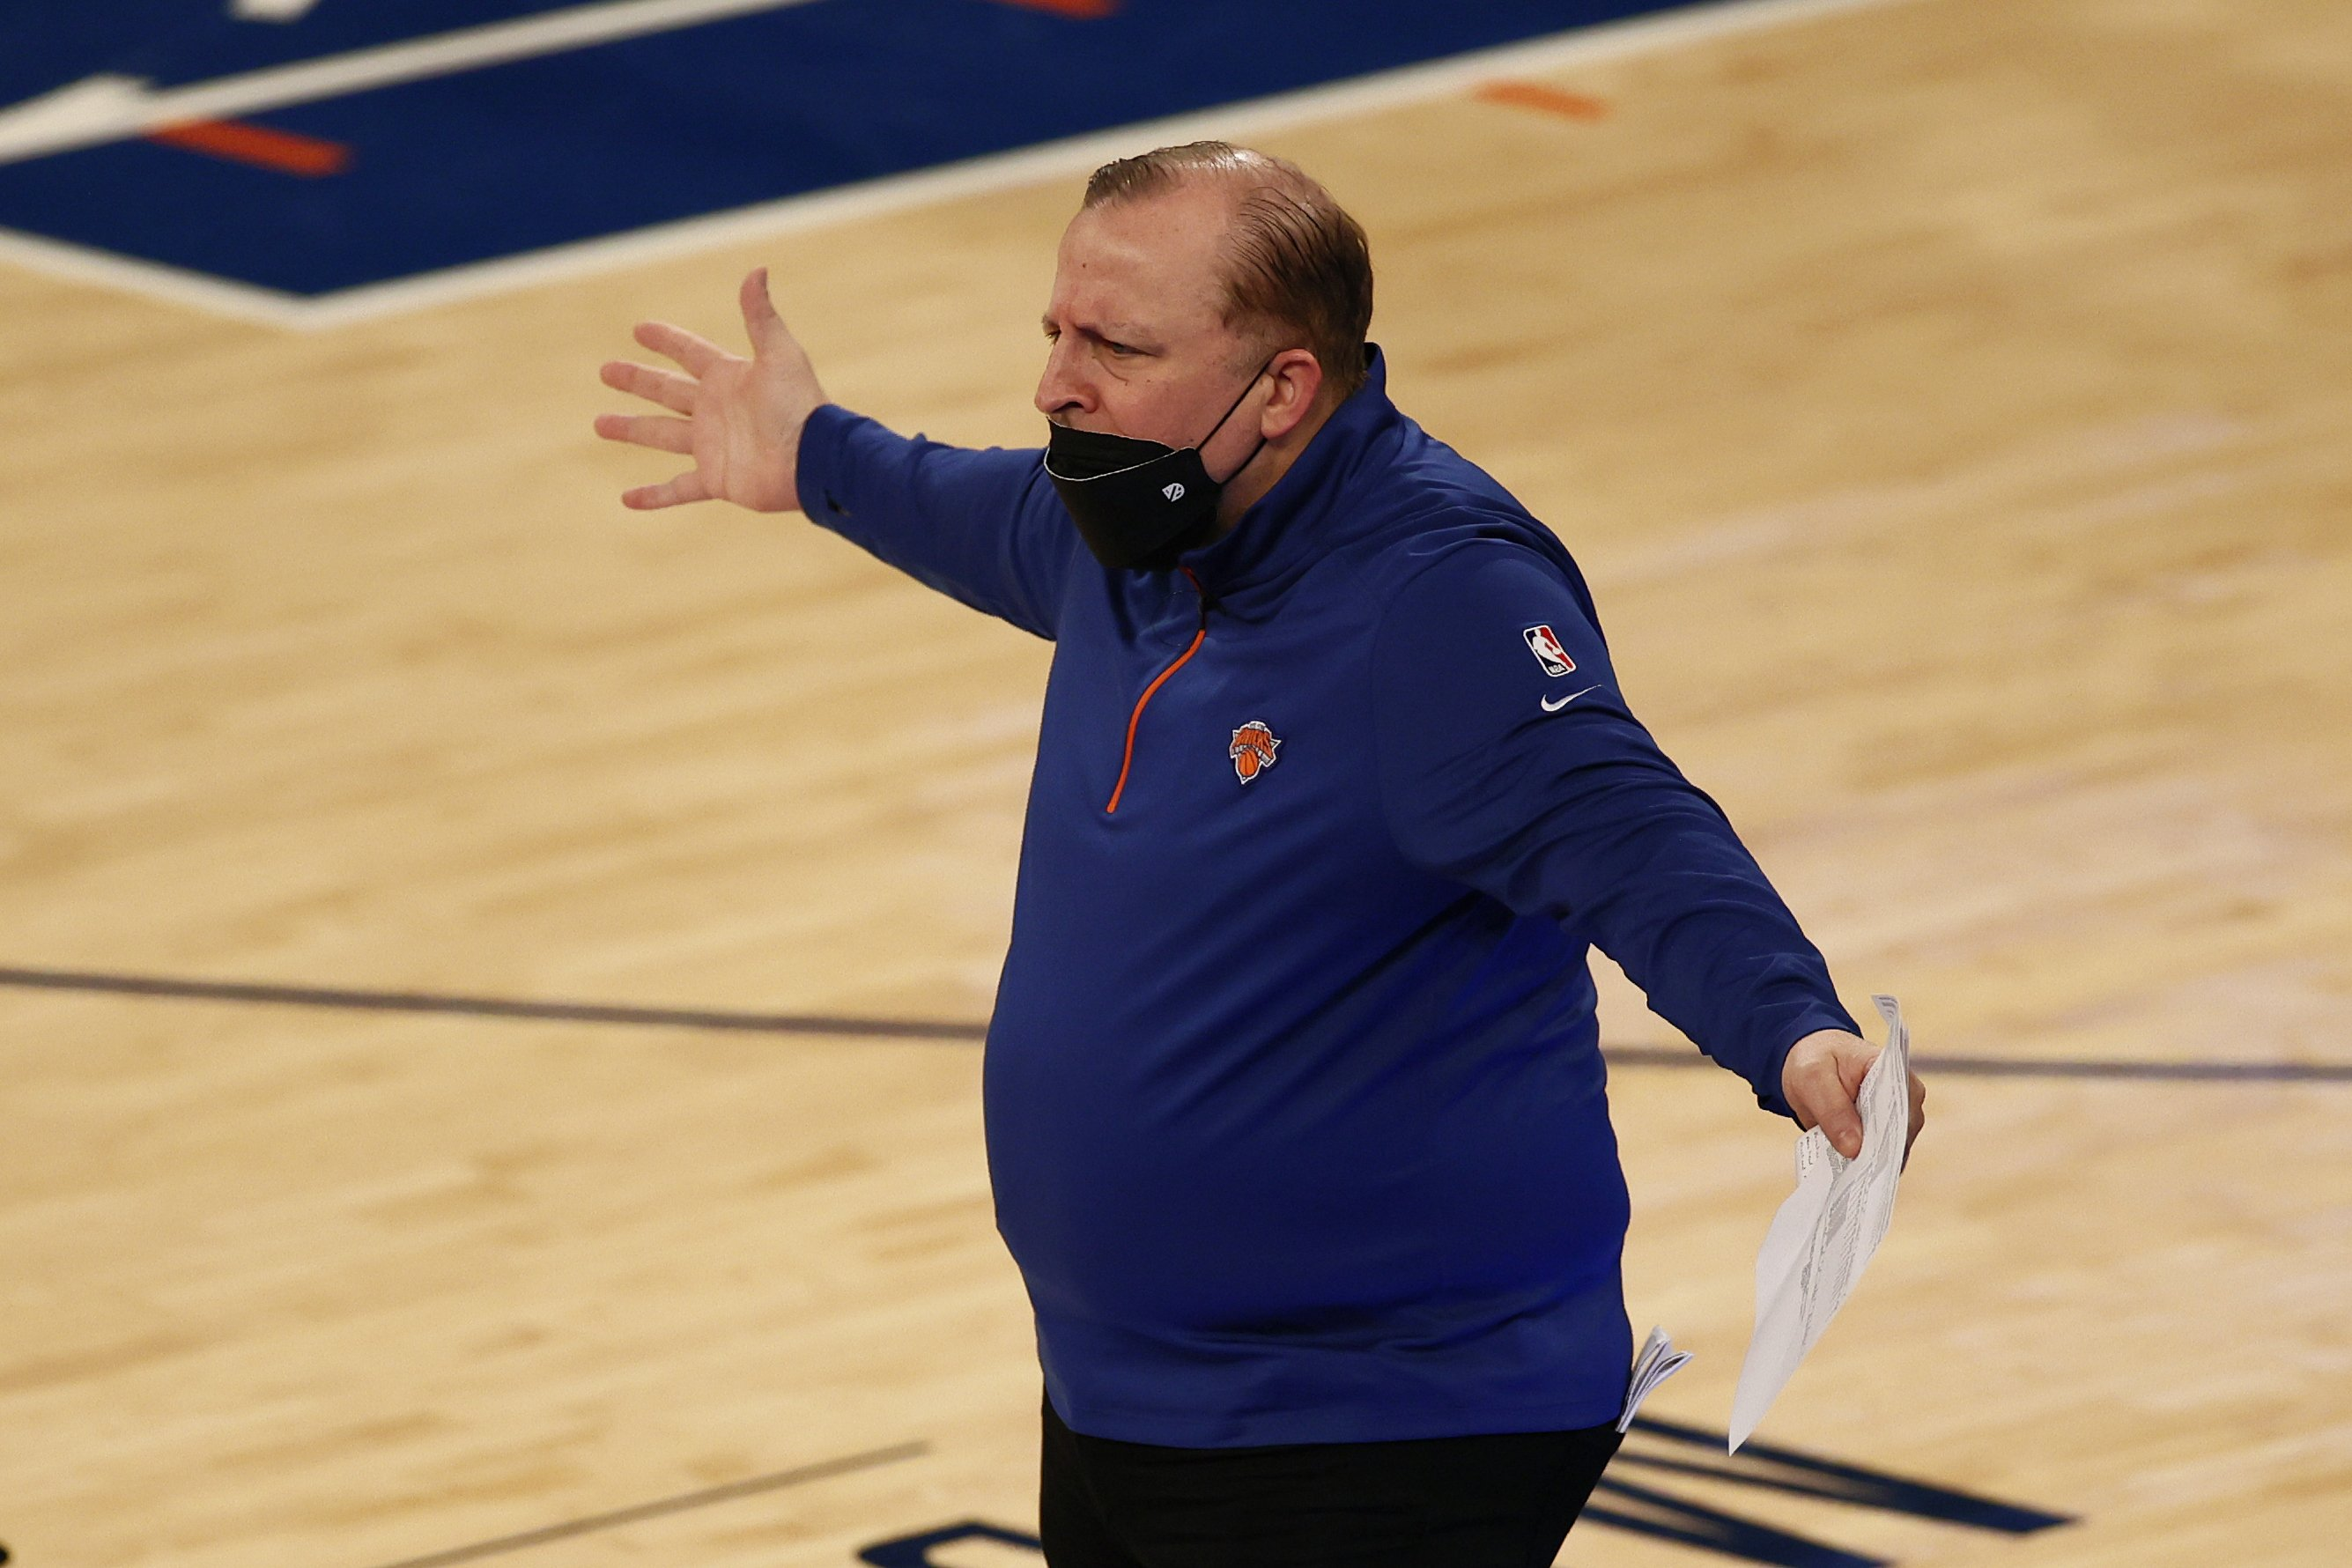 Thibodeau's ways working - and winning - with surging Knicks